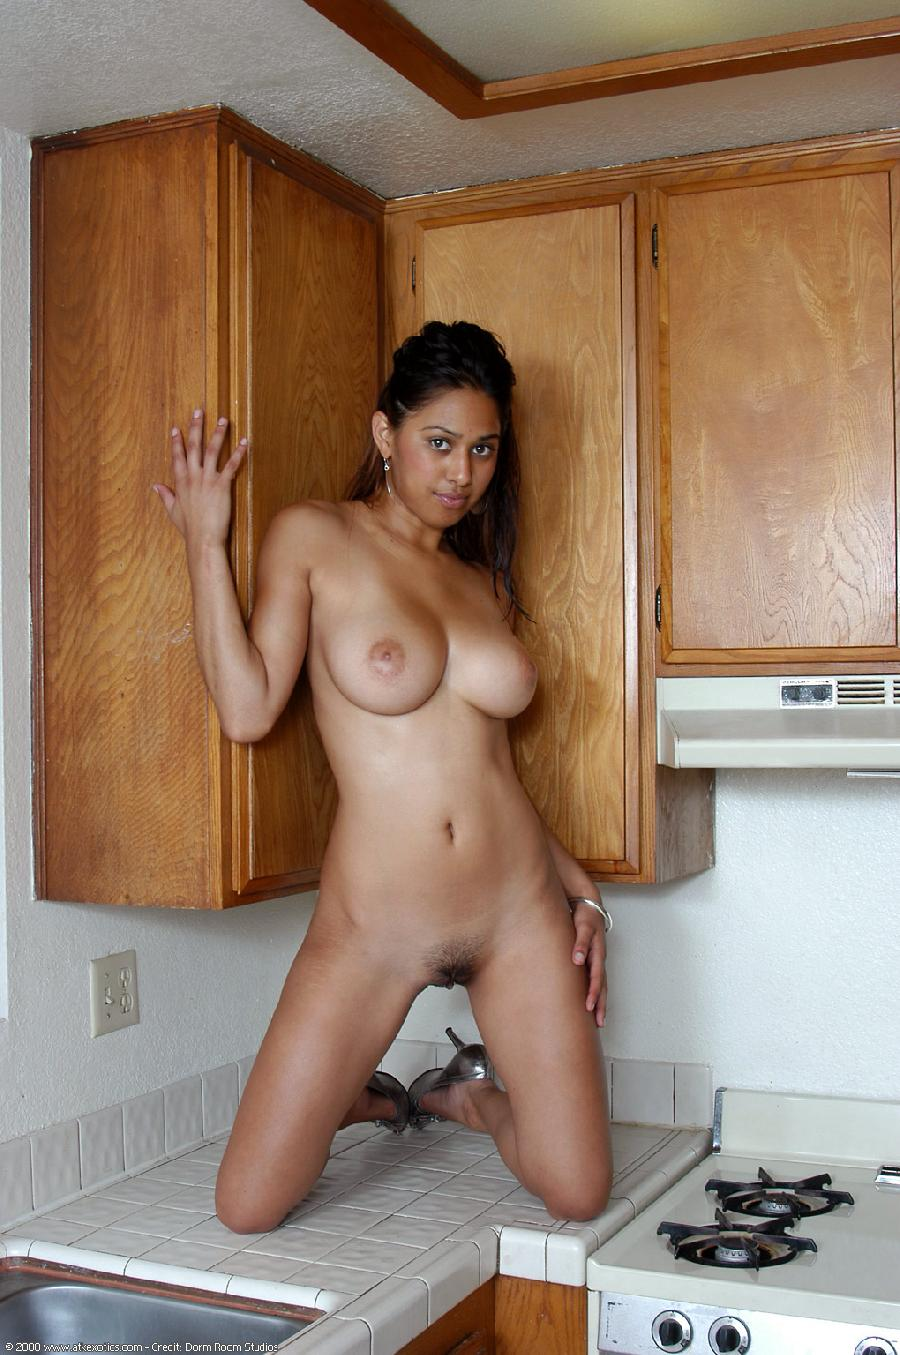 Latina girl with big tits  - 11